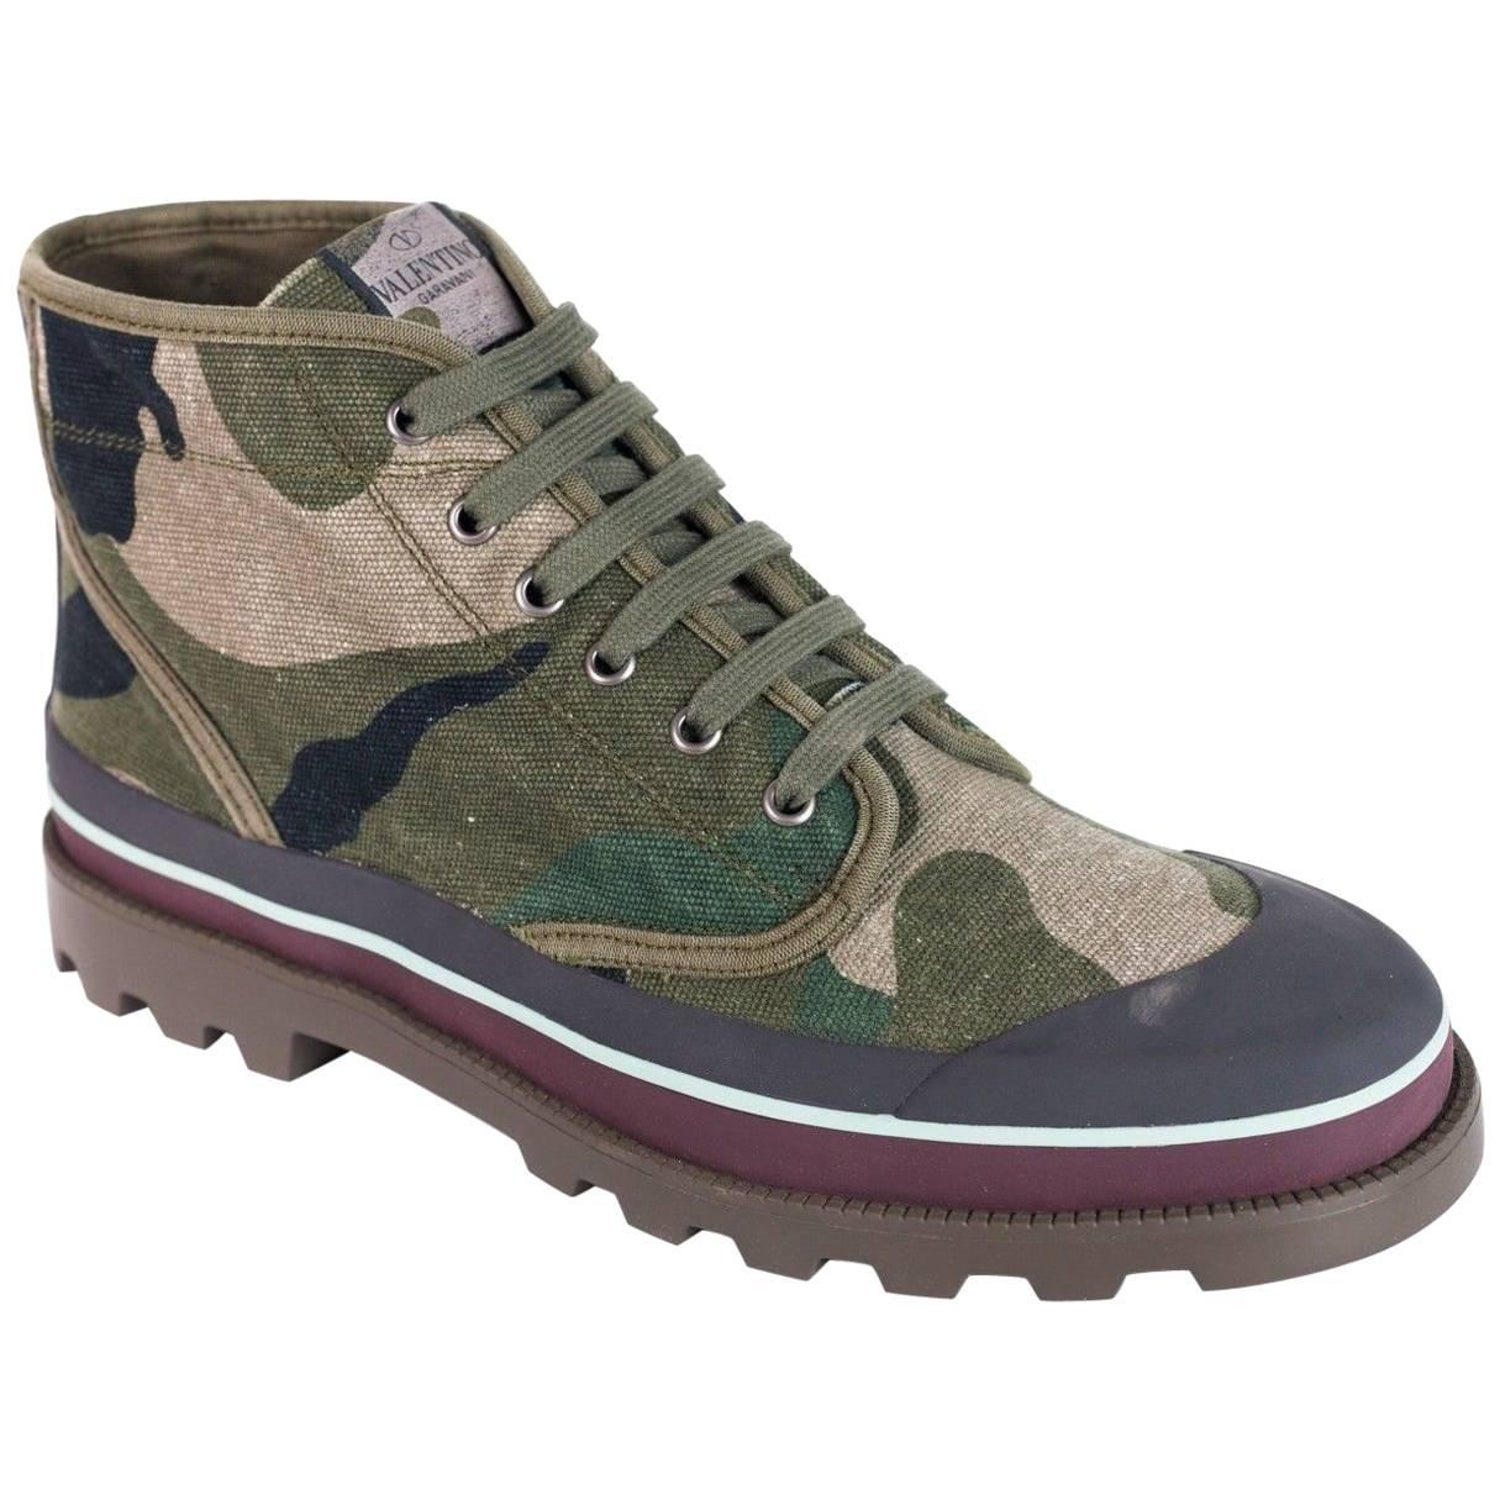 520f9c6268a Valentino Men Green Grey Camouflage Canvas Desert Boots For Sale at 1stdibs